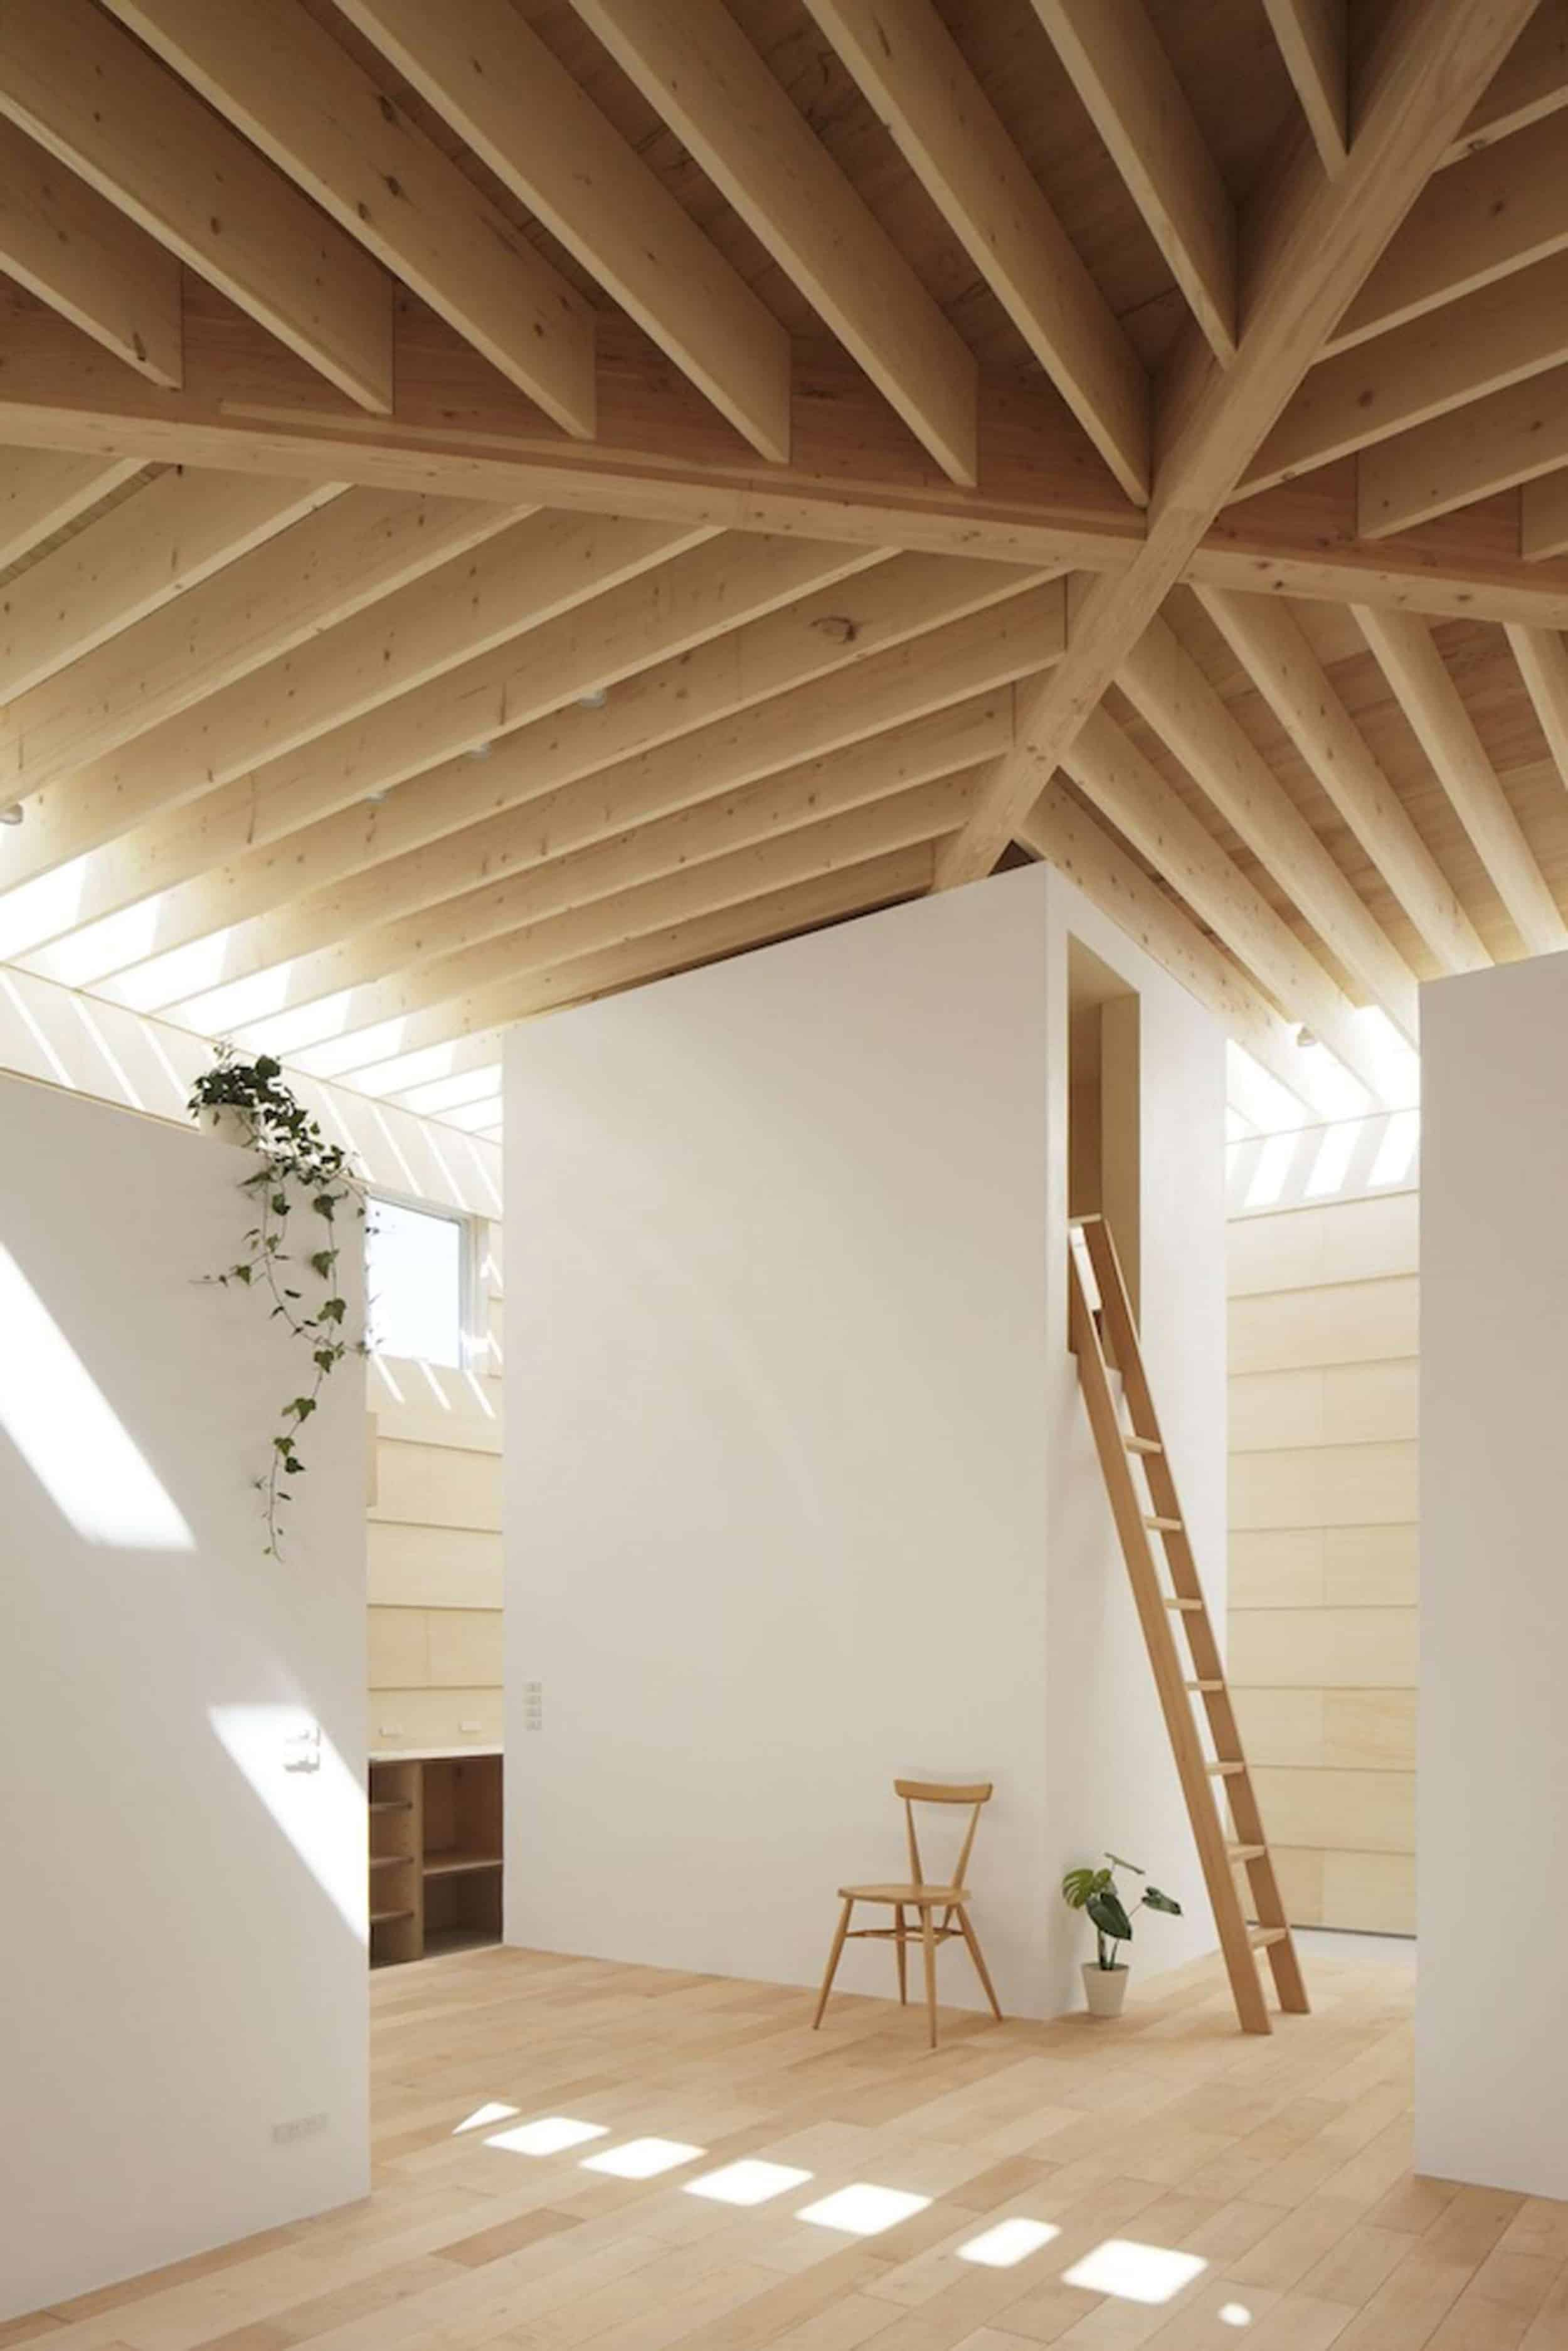 Emily Henderson How To Add Character To Basic Architecture Walls Celings Wood Unfinished Raw 28